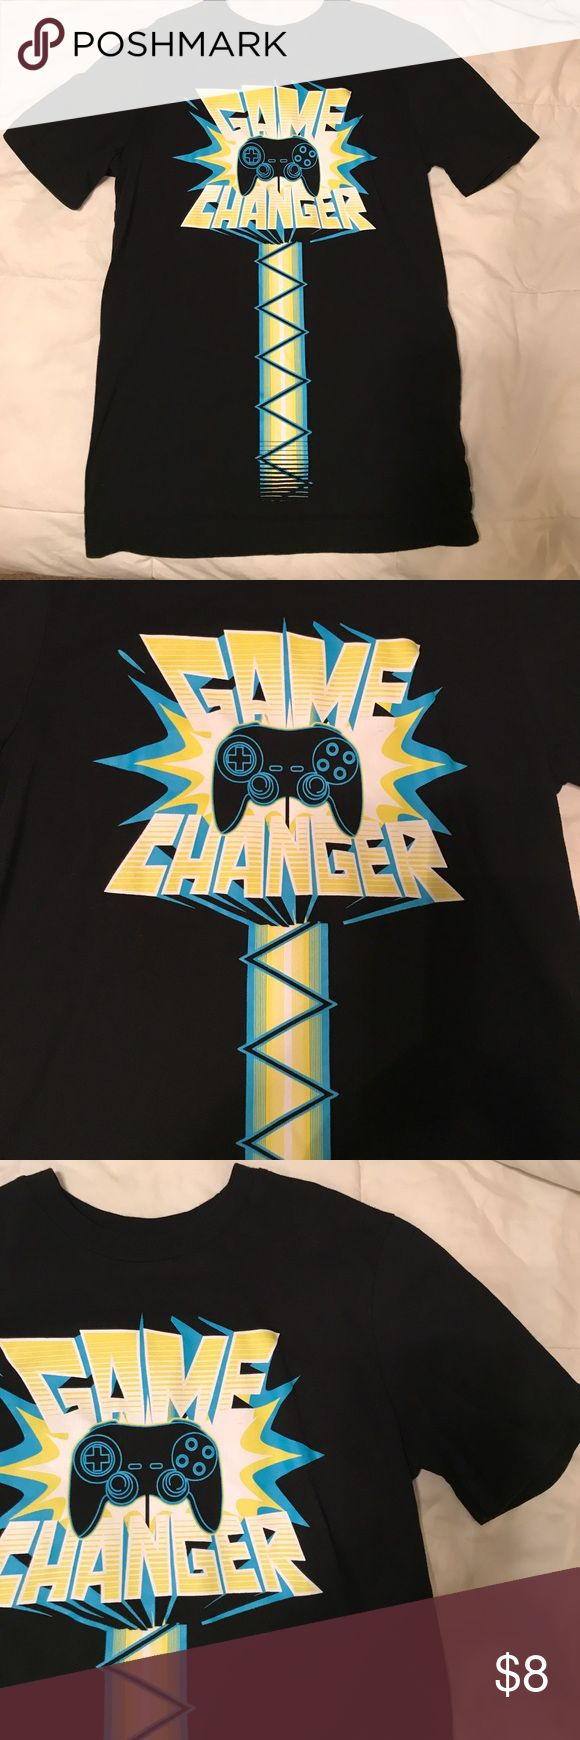 Boys graphic T-shirt Black T-shirt with game changer graphic and video game controller. Graphic is in shades of teal, white and a yellowish green. Never worn. Size large 12/14. Price is negotiable, please use the offer button discounts on bundles. Circo Shirts & Tops Tees - Short Sleeve